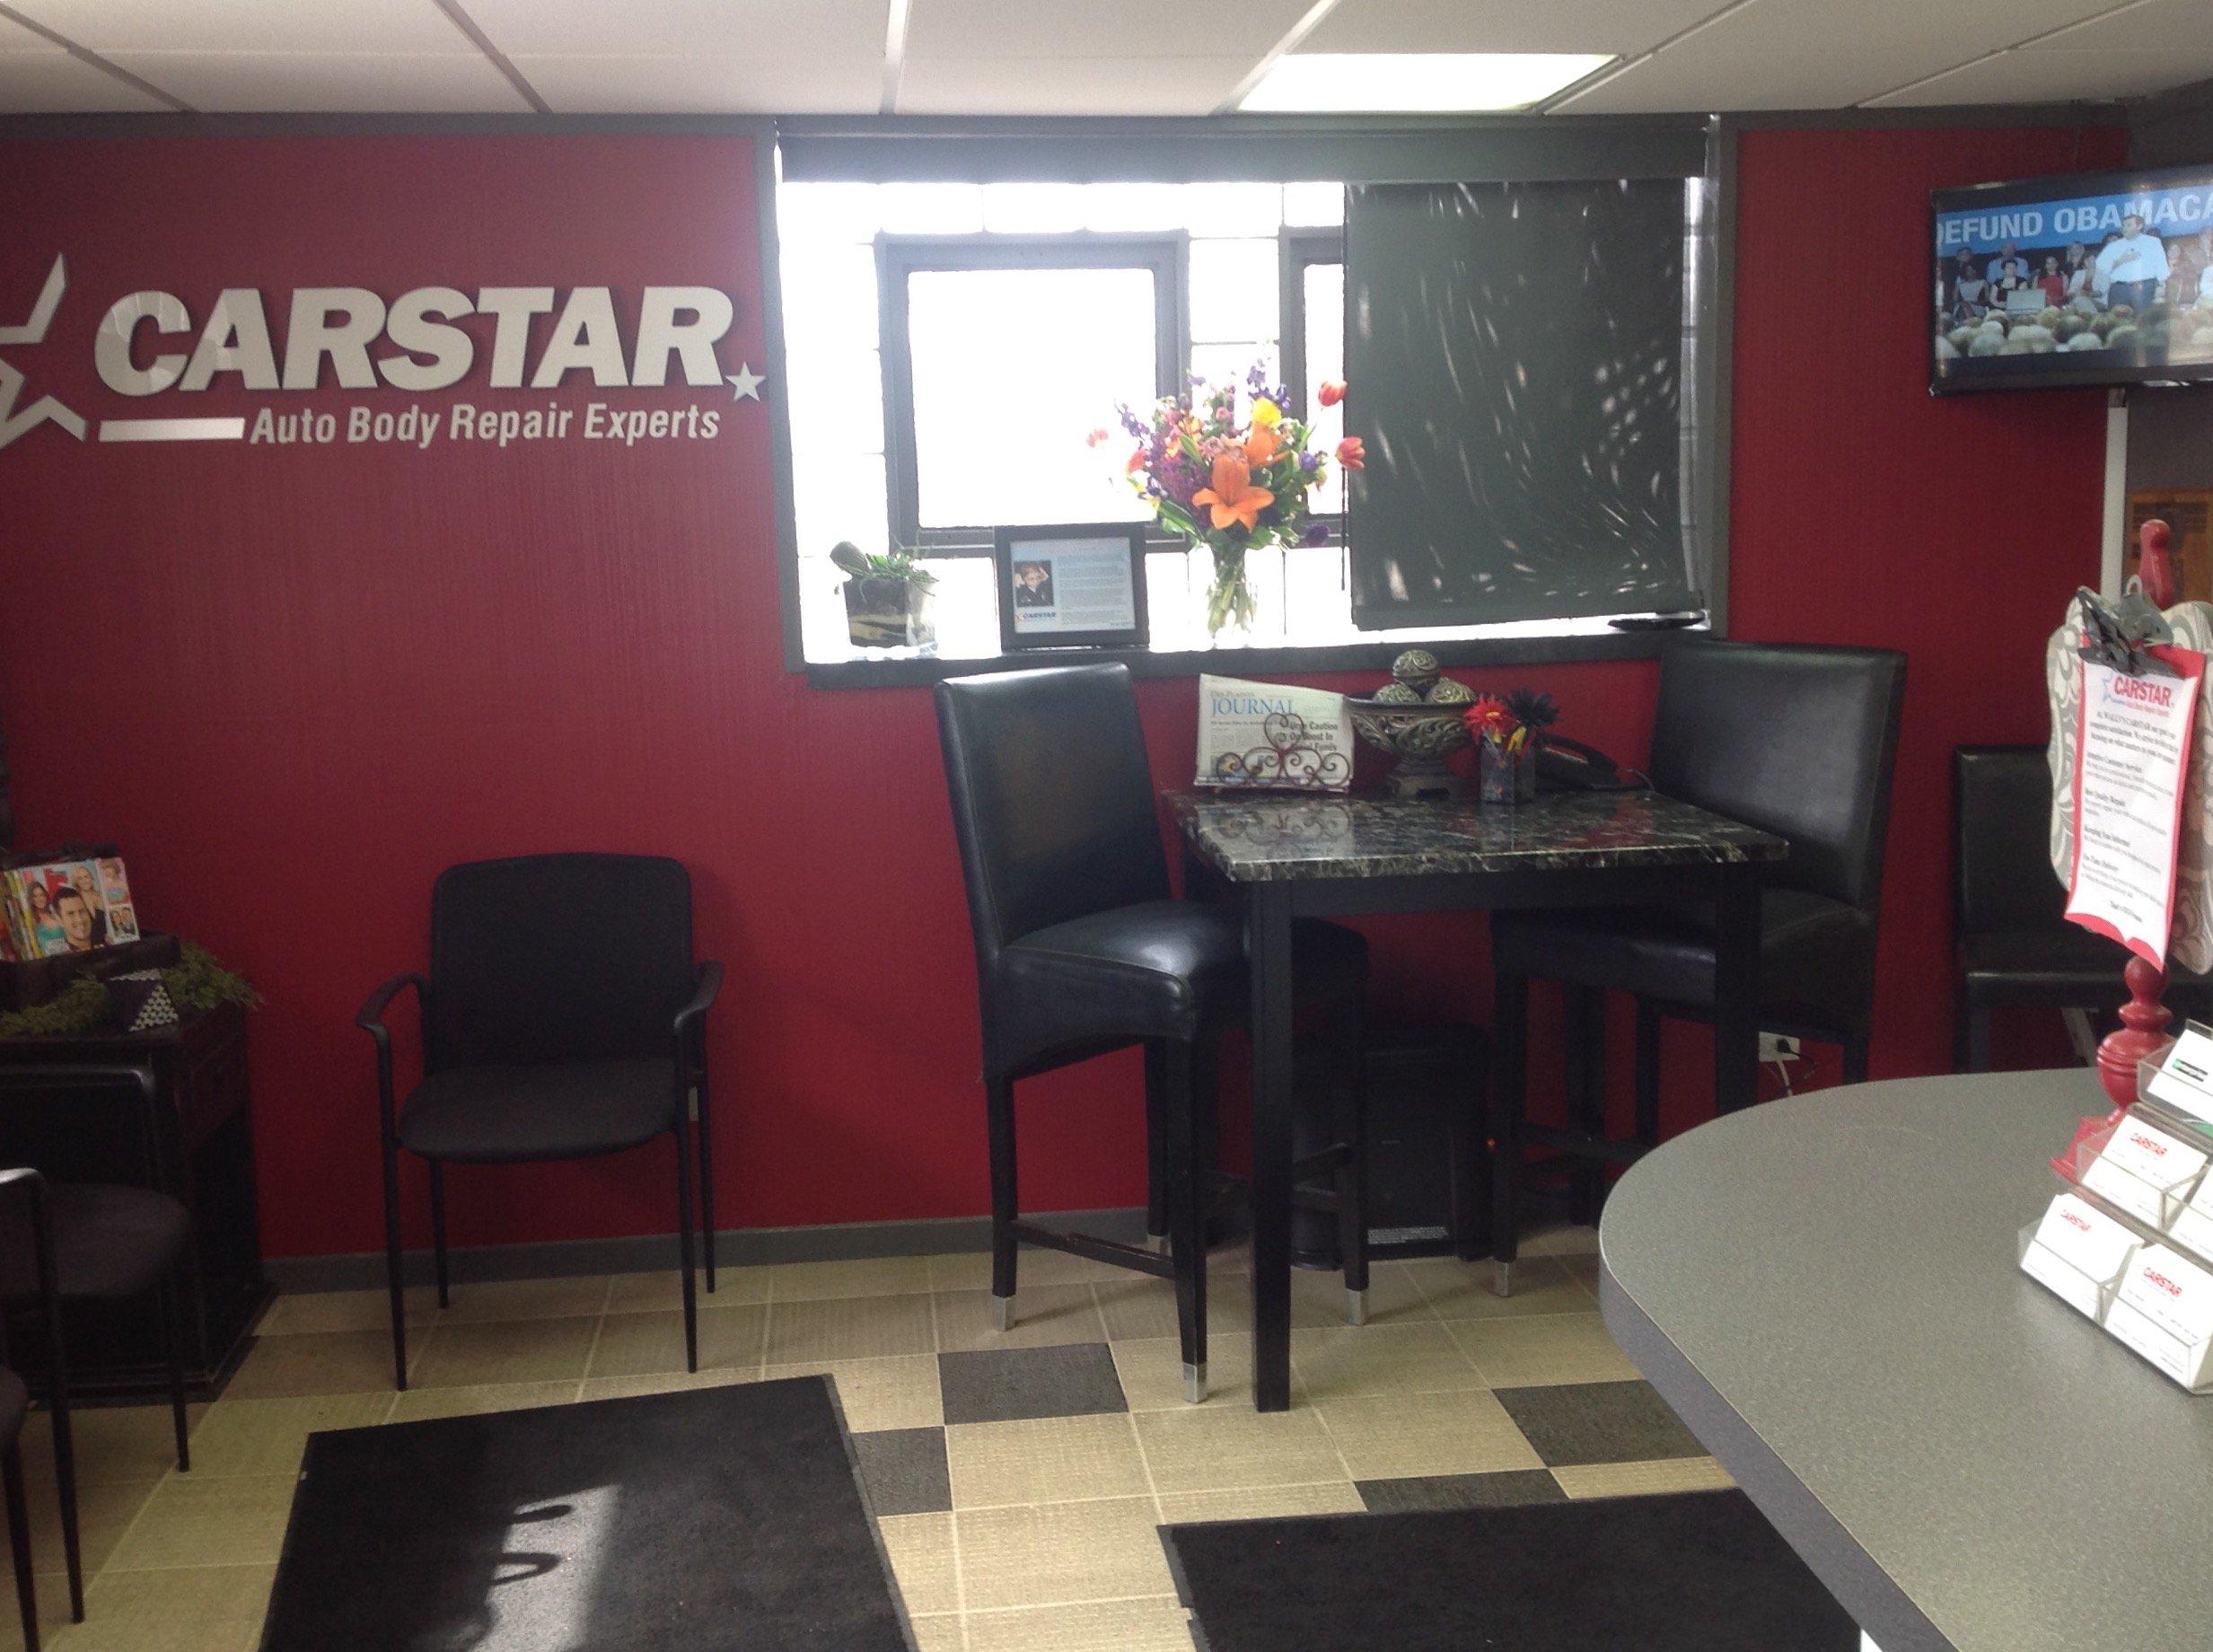 Wally's CARSTAR Auto Body: Customer Lobby